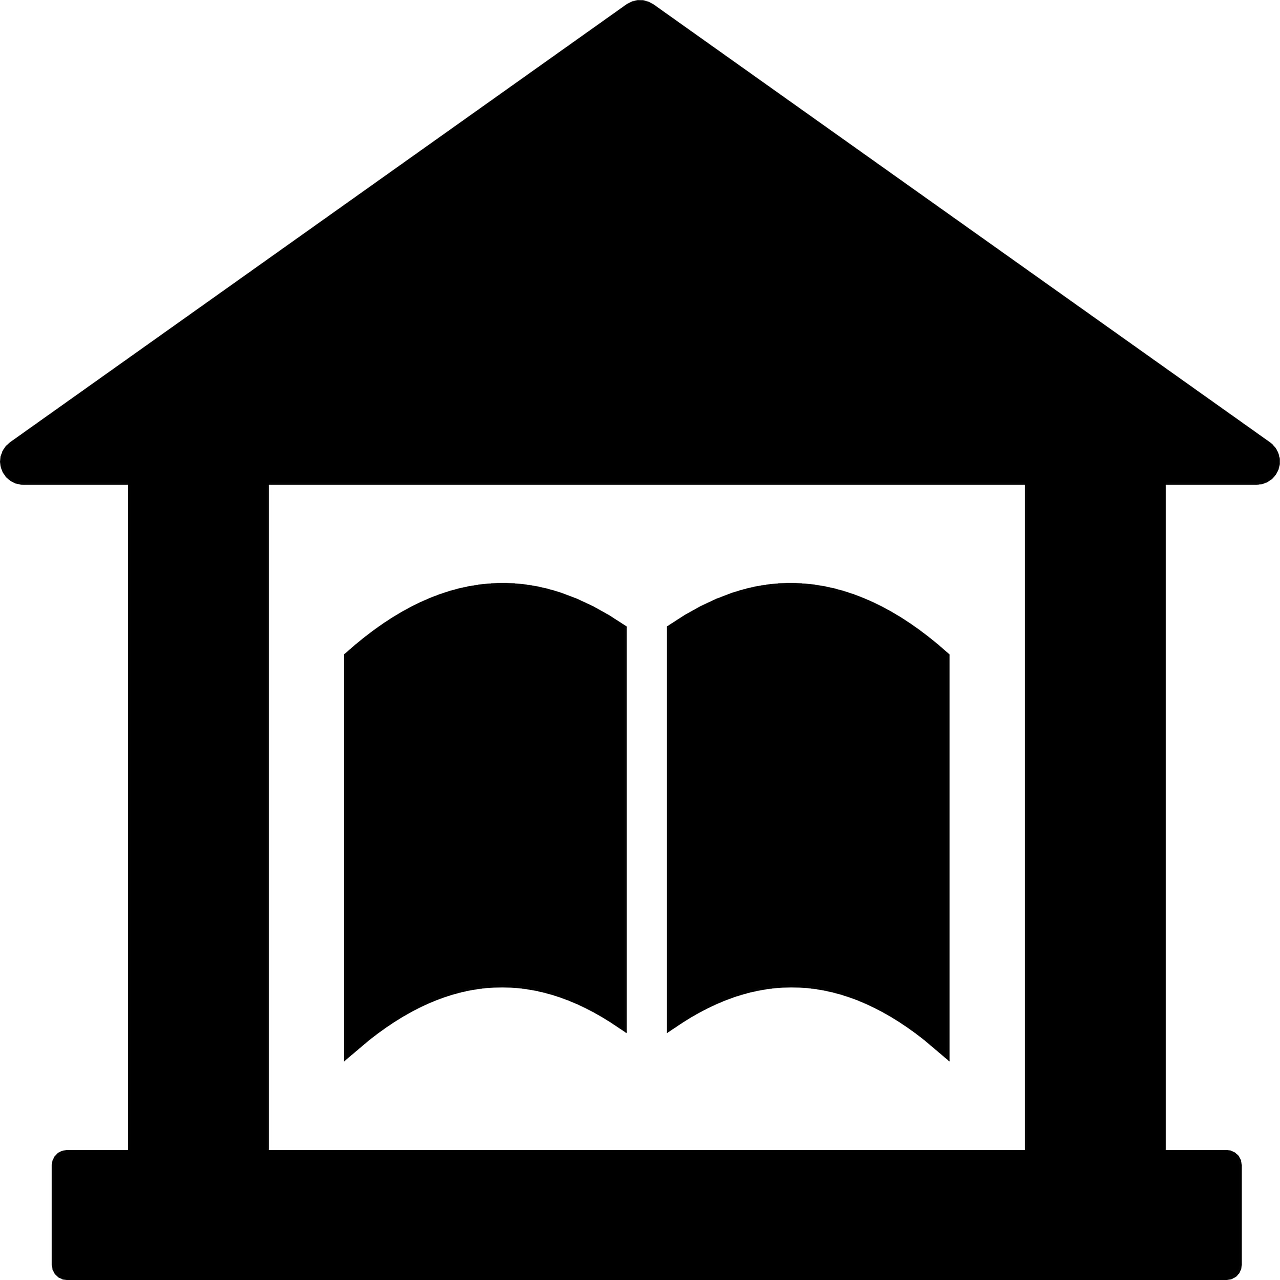 drawing of building with open book inside